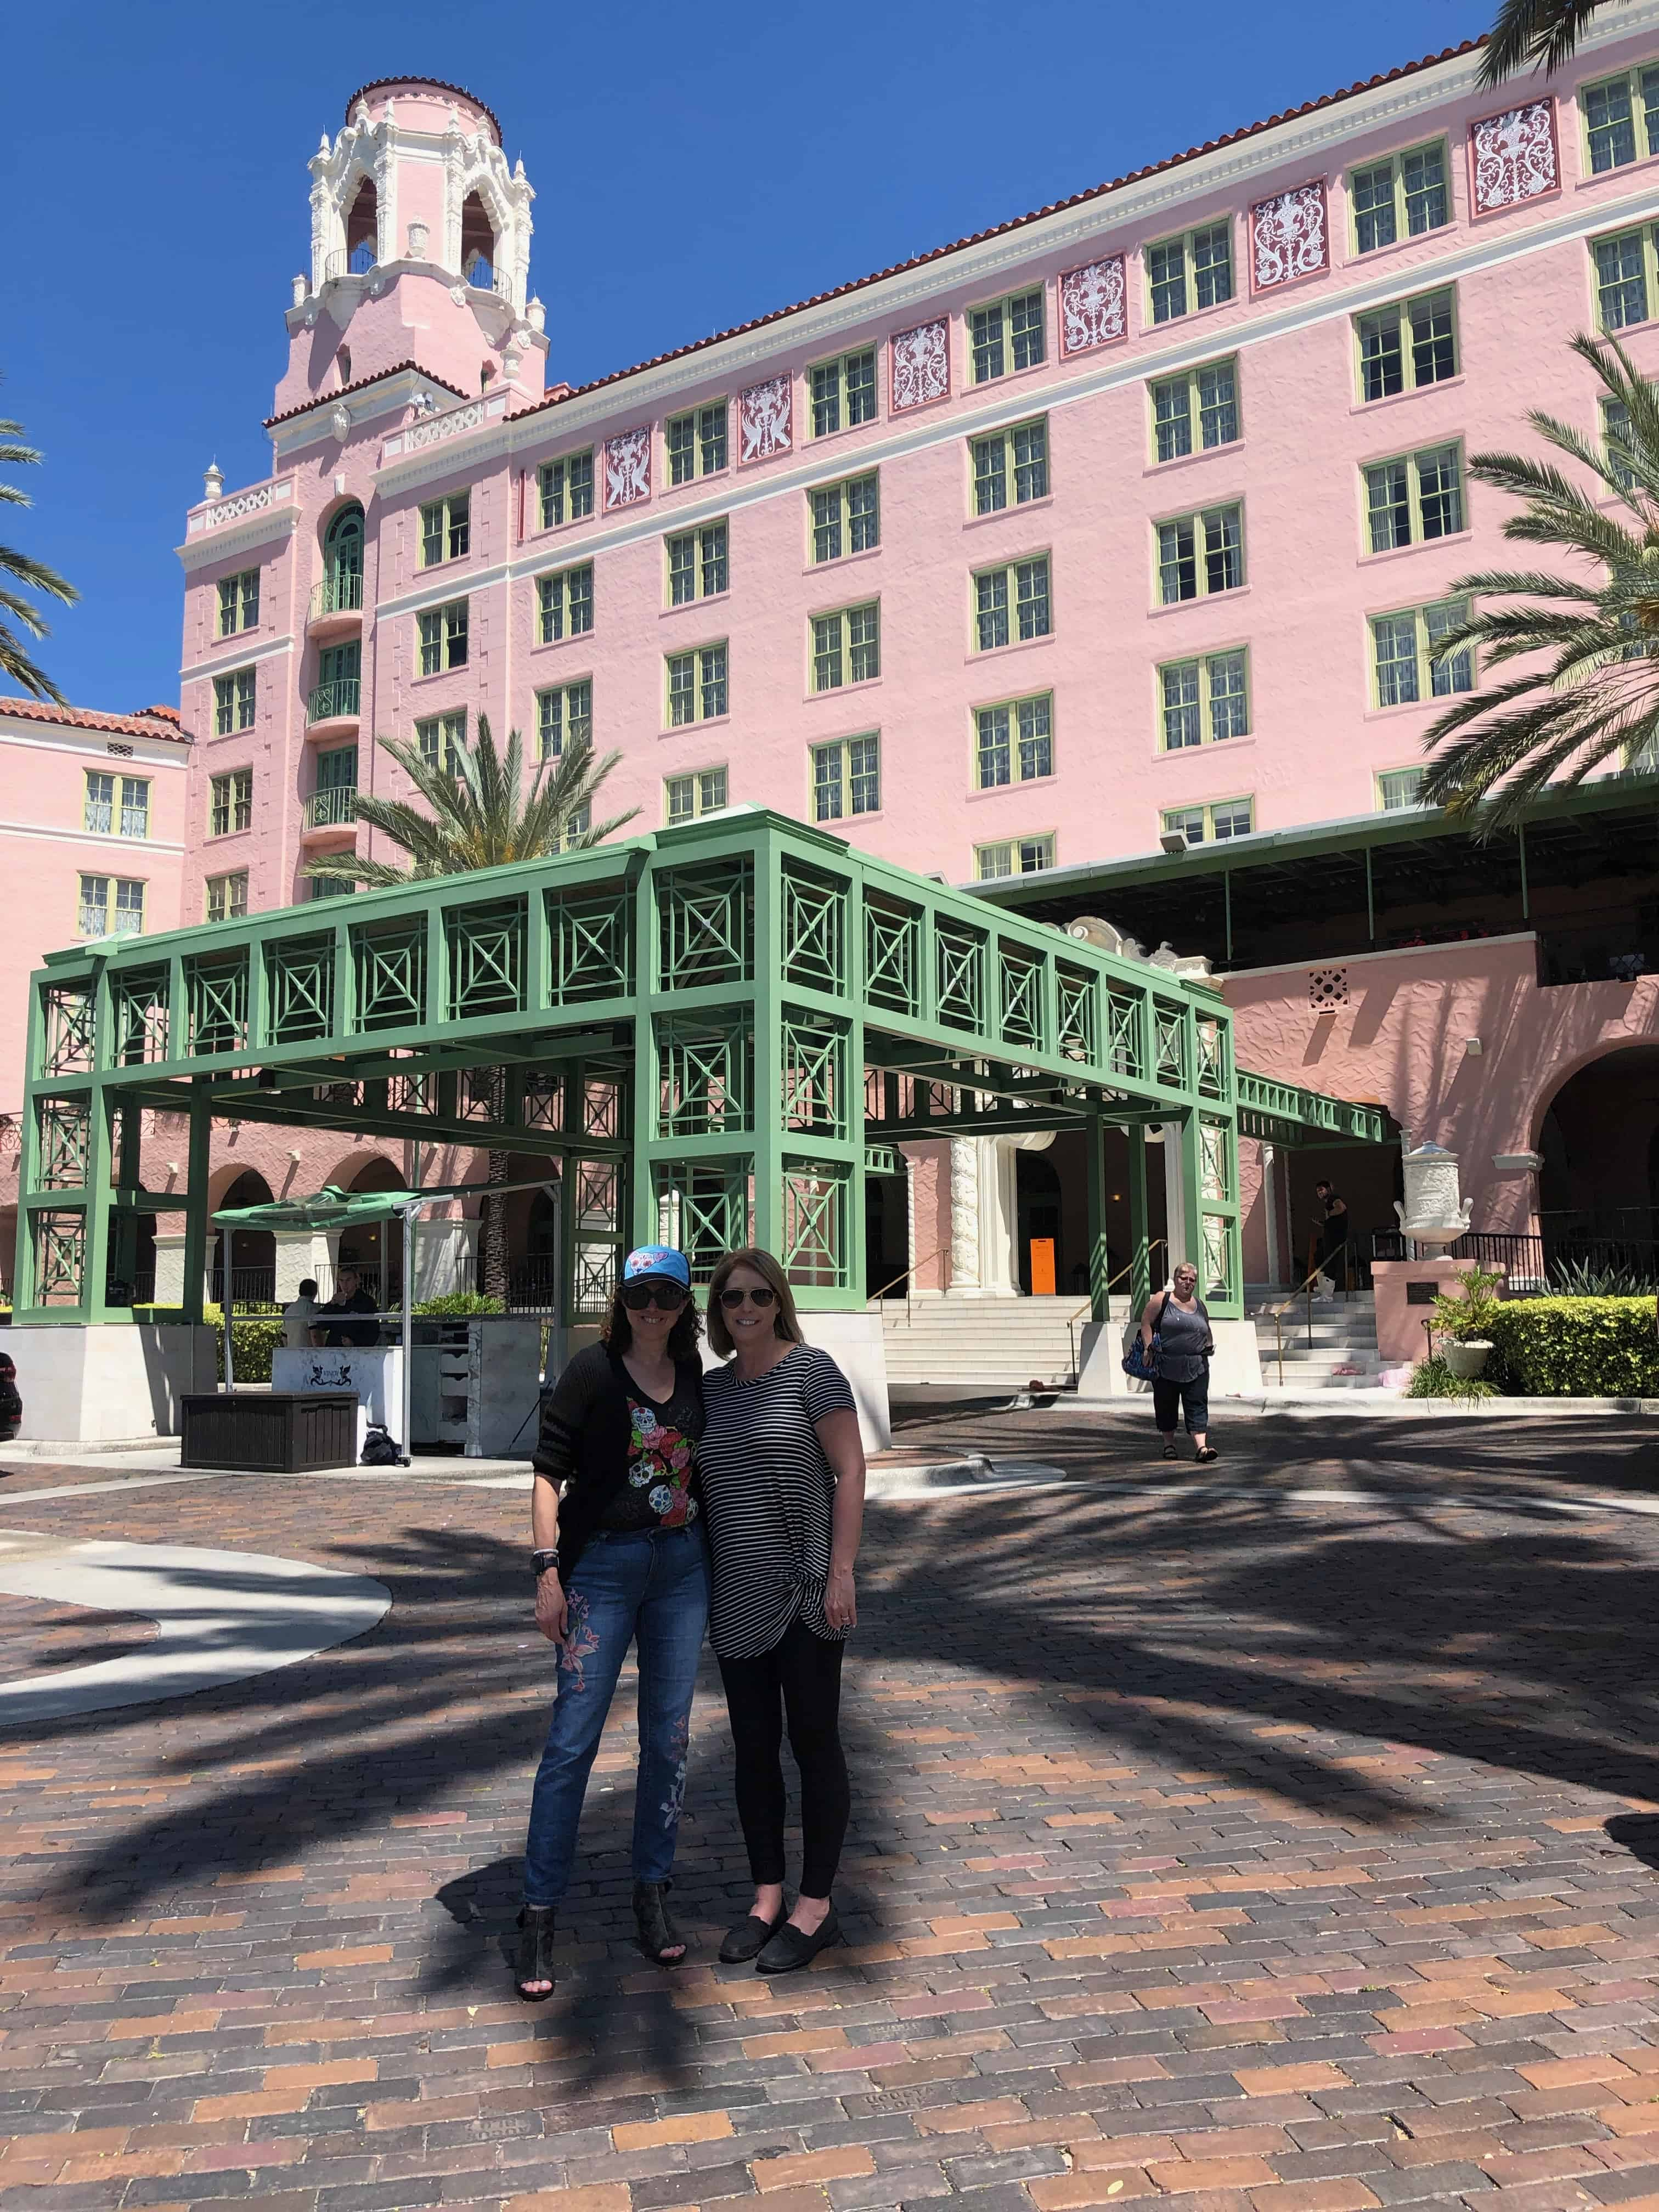 We are standing in front of the Vinoy Hotel in St. Petersburg, Florida